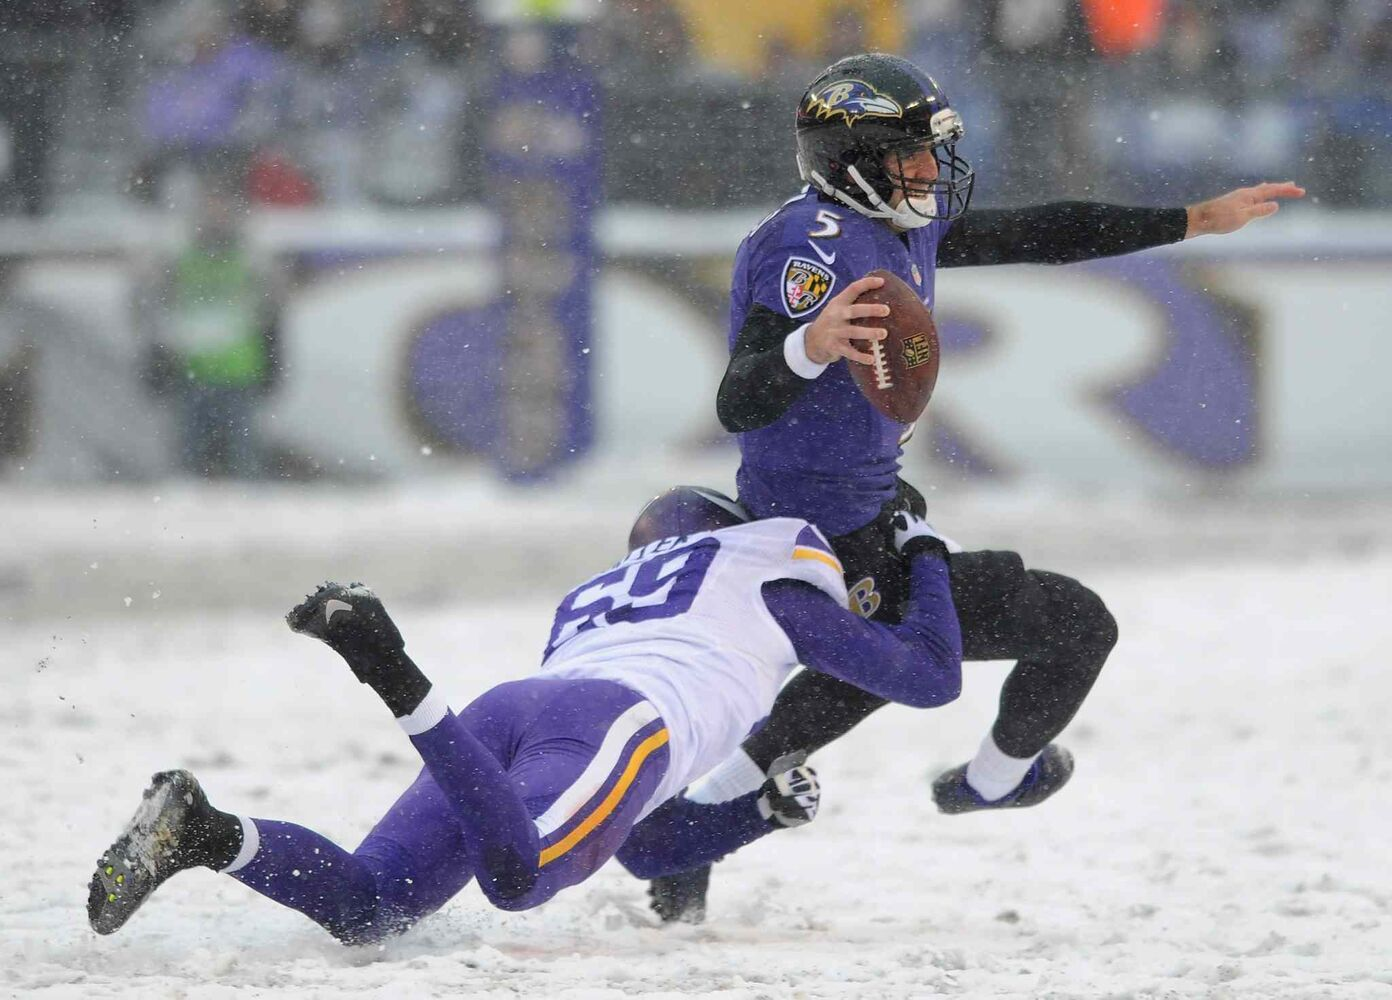 Baltimore Ravens quarterback Joe Flacco (right) is tackled by Minnesota Vikings defensive end Jared Allen as he rushes the ball in the first half.